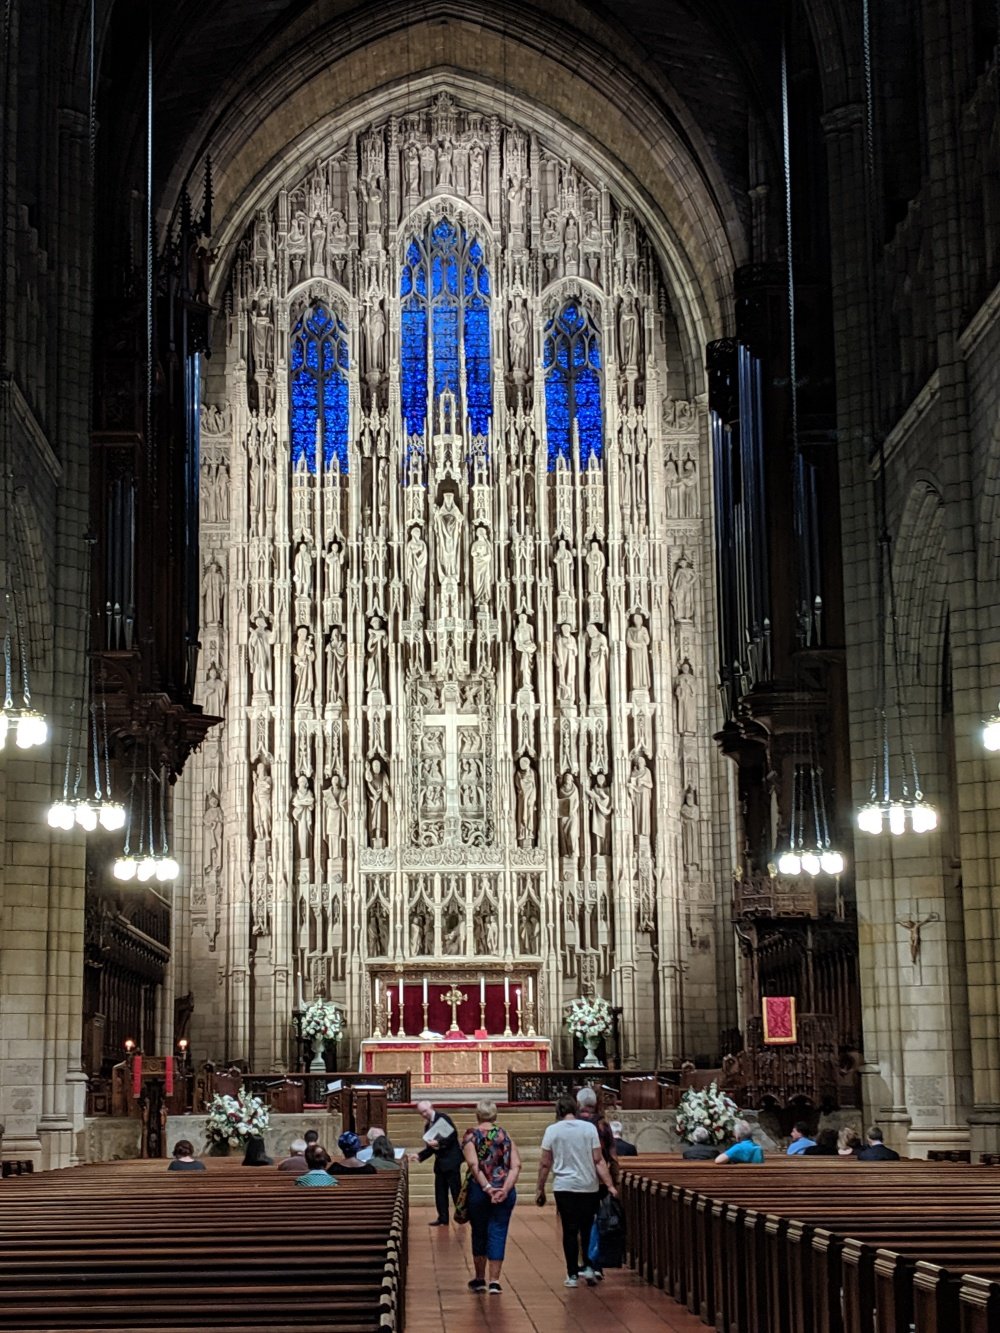 Saint Thomas Church, 1 W 53rd St, New York, NY